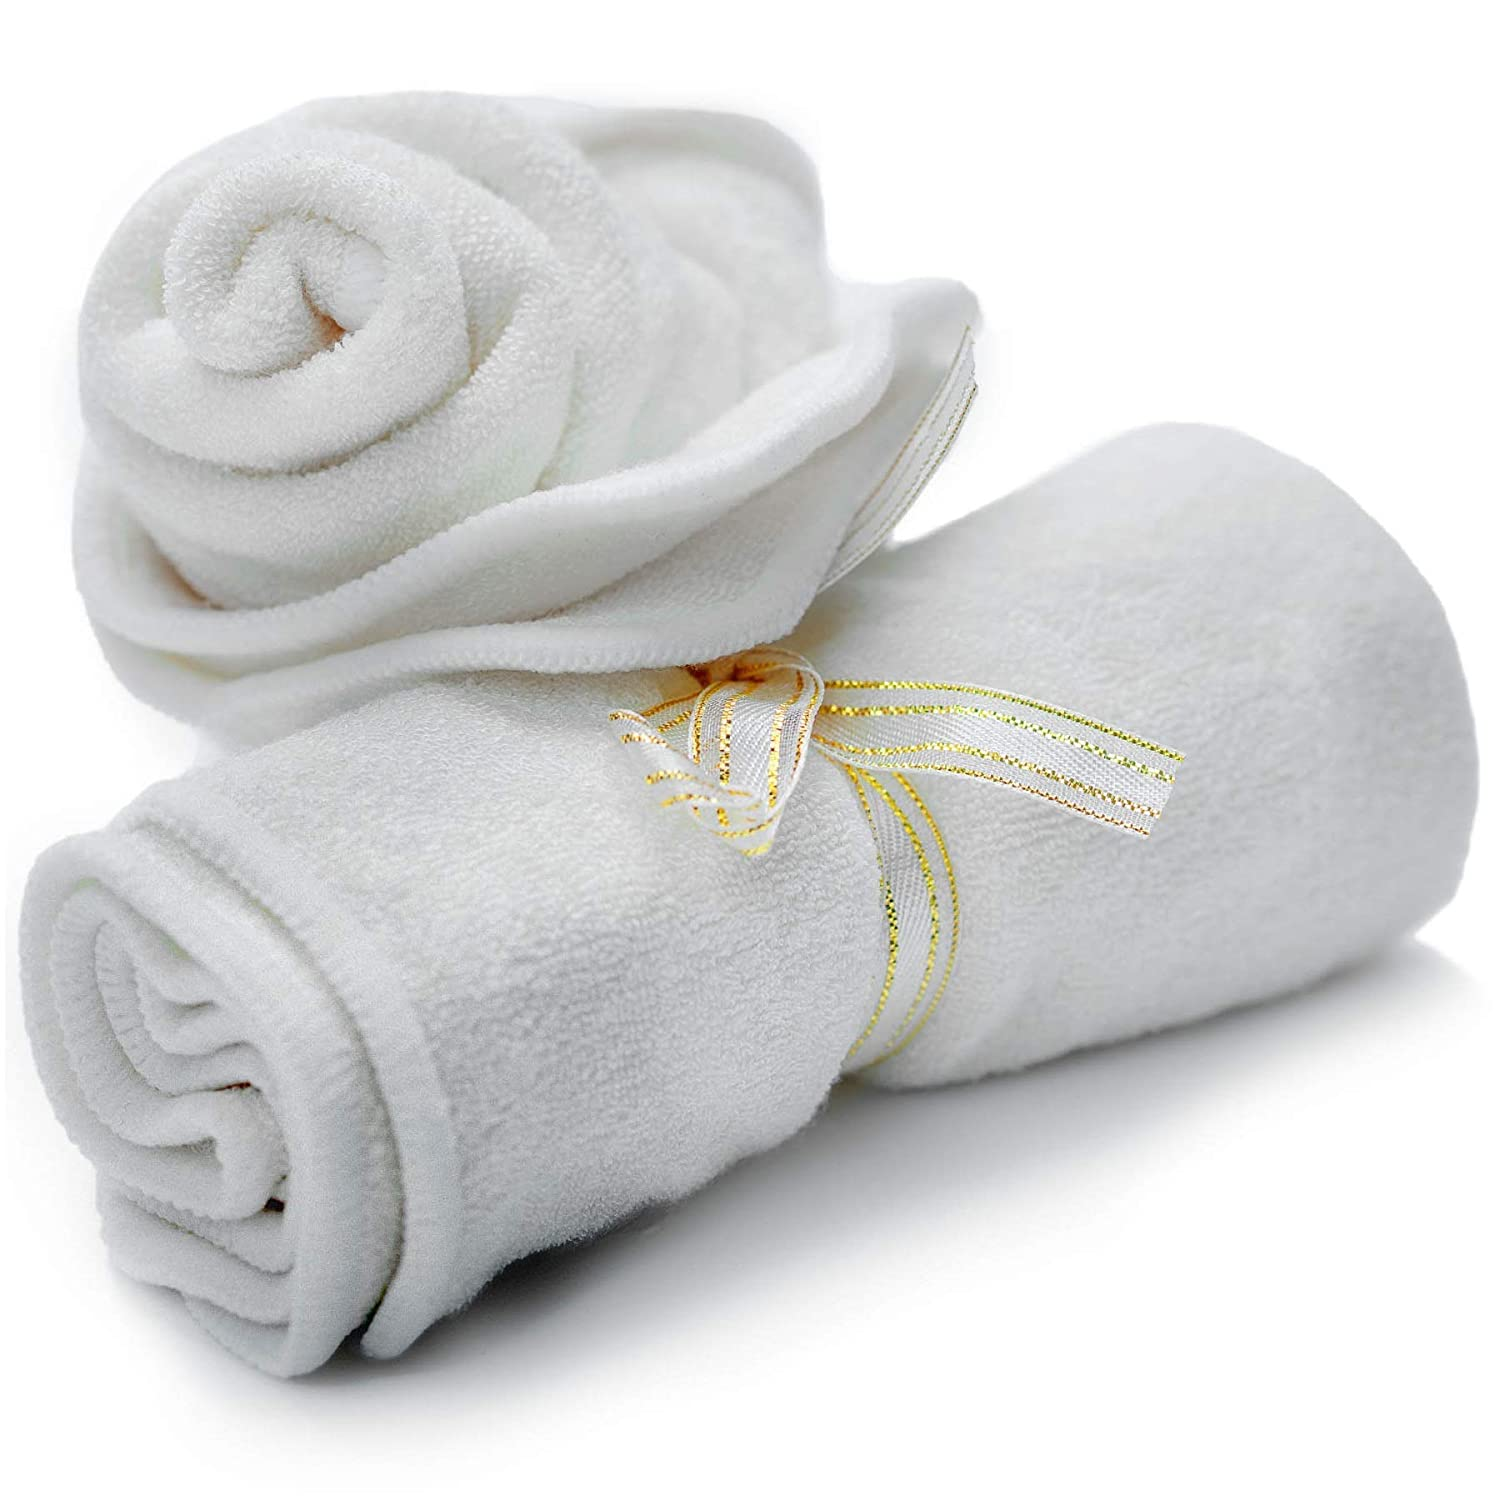 Smiling Gaia Baby Washcloths Made from Organic Bamboo 2 Pack Soft Luxurious Eco Wash Cloth Set is Perfect for Babies Sensitive Skin Thick Reusable Baby Wipes Generously Sized at 10.2 Inches